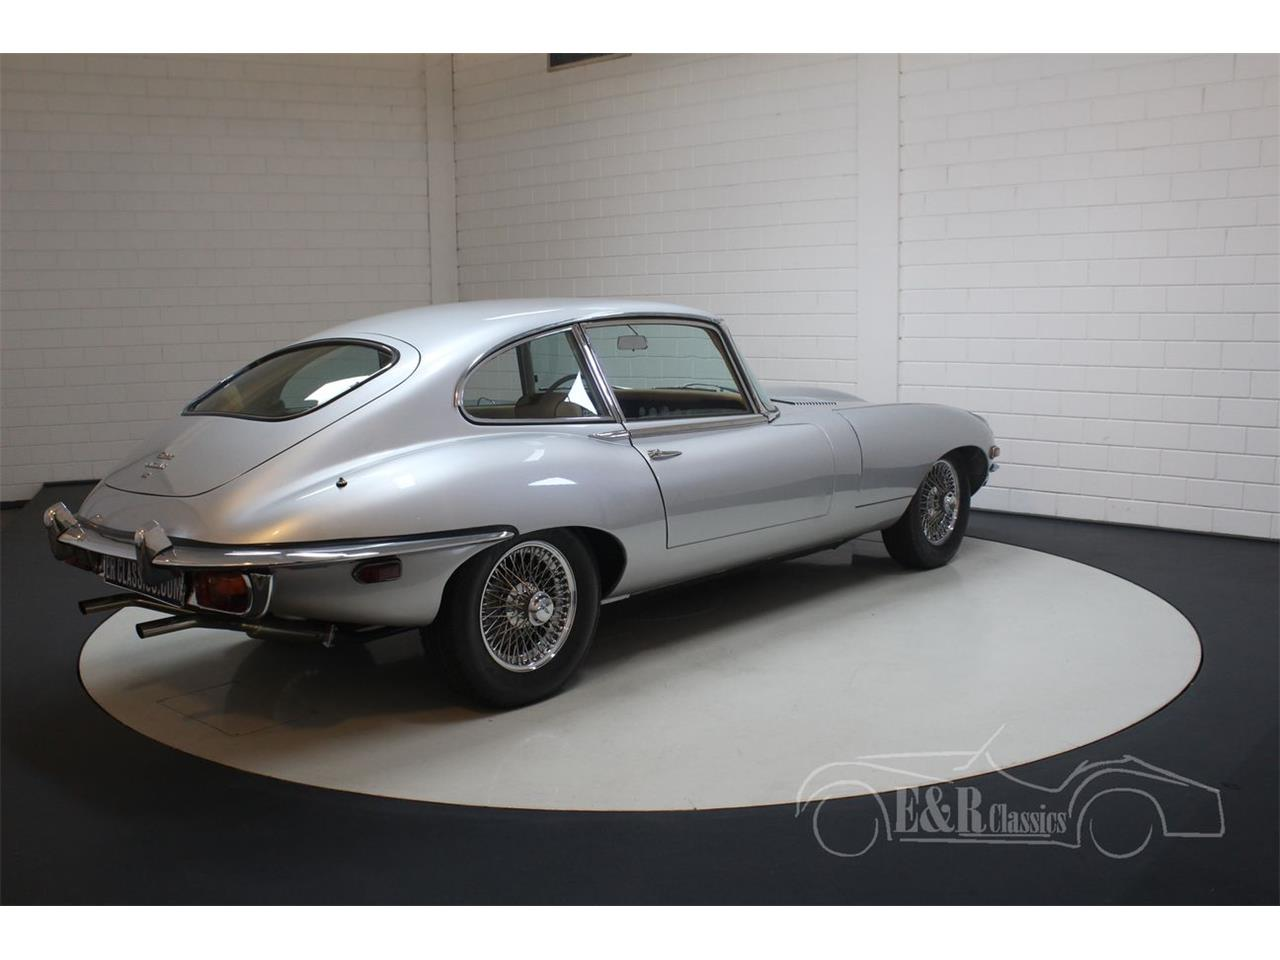 Large Picture of Classic 1969 E-Type located in Waalwijk noord brabant - $101,000.00 Offered by E & R Classics - PRSR